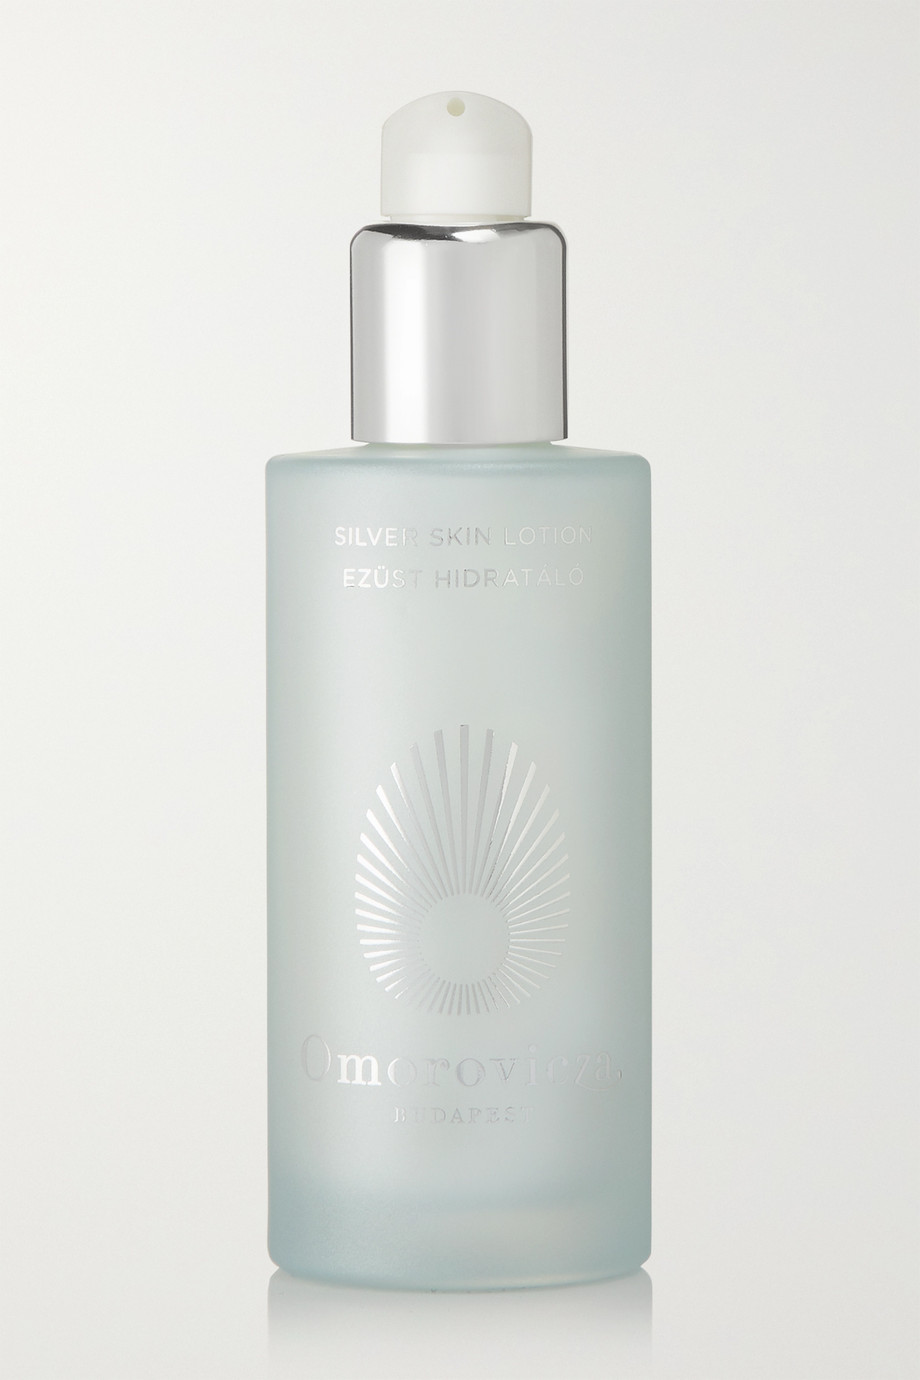 Omorovicza Silver Skin Lotion, 50ml